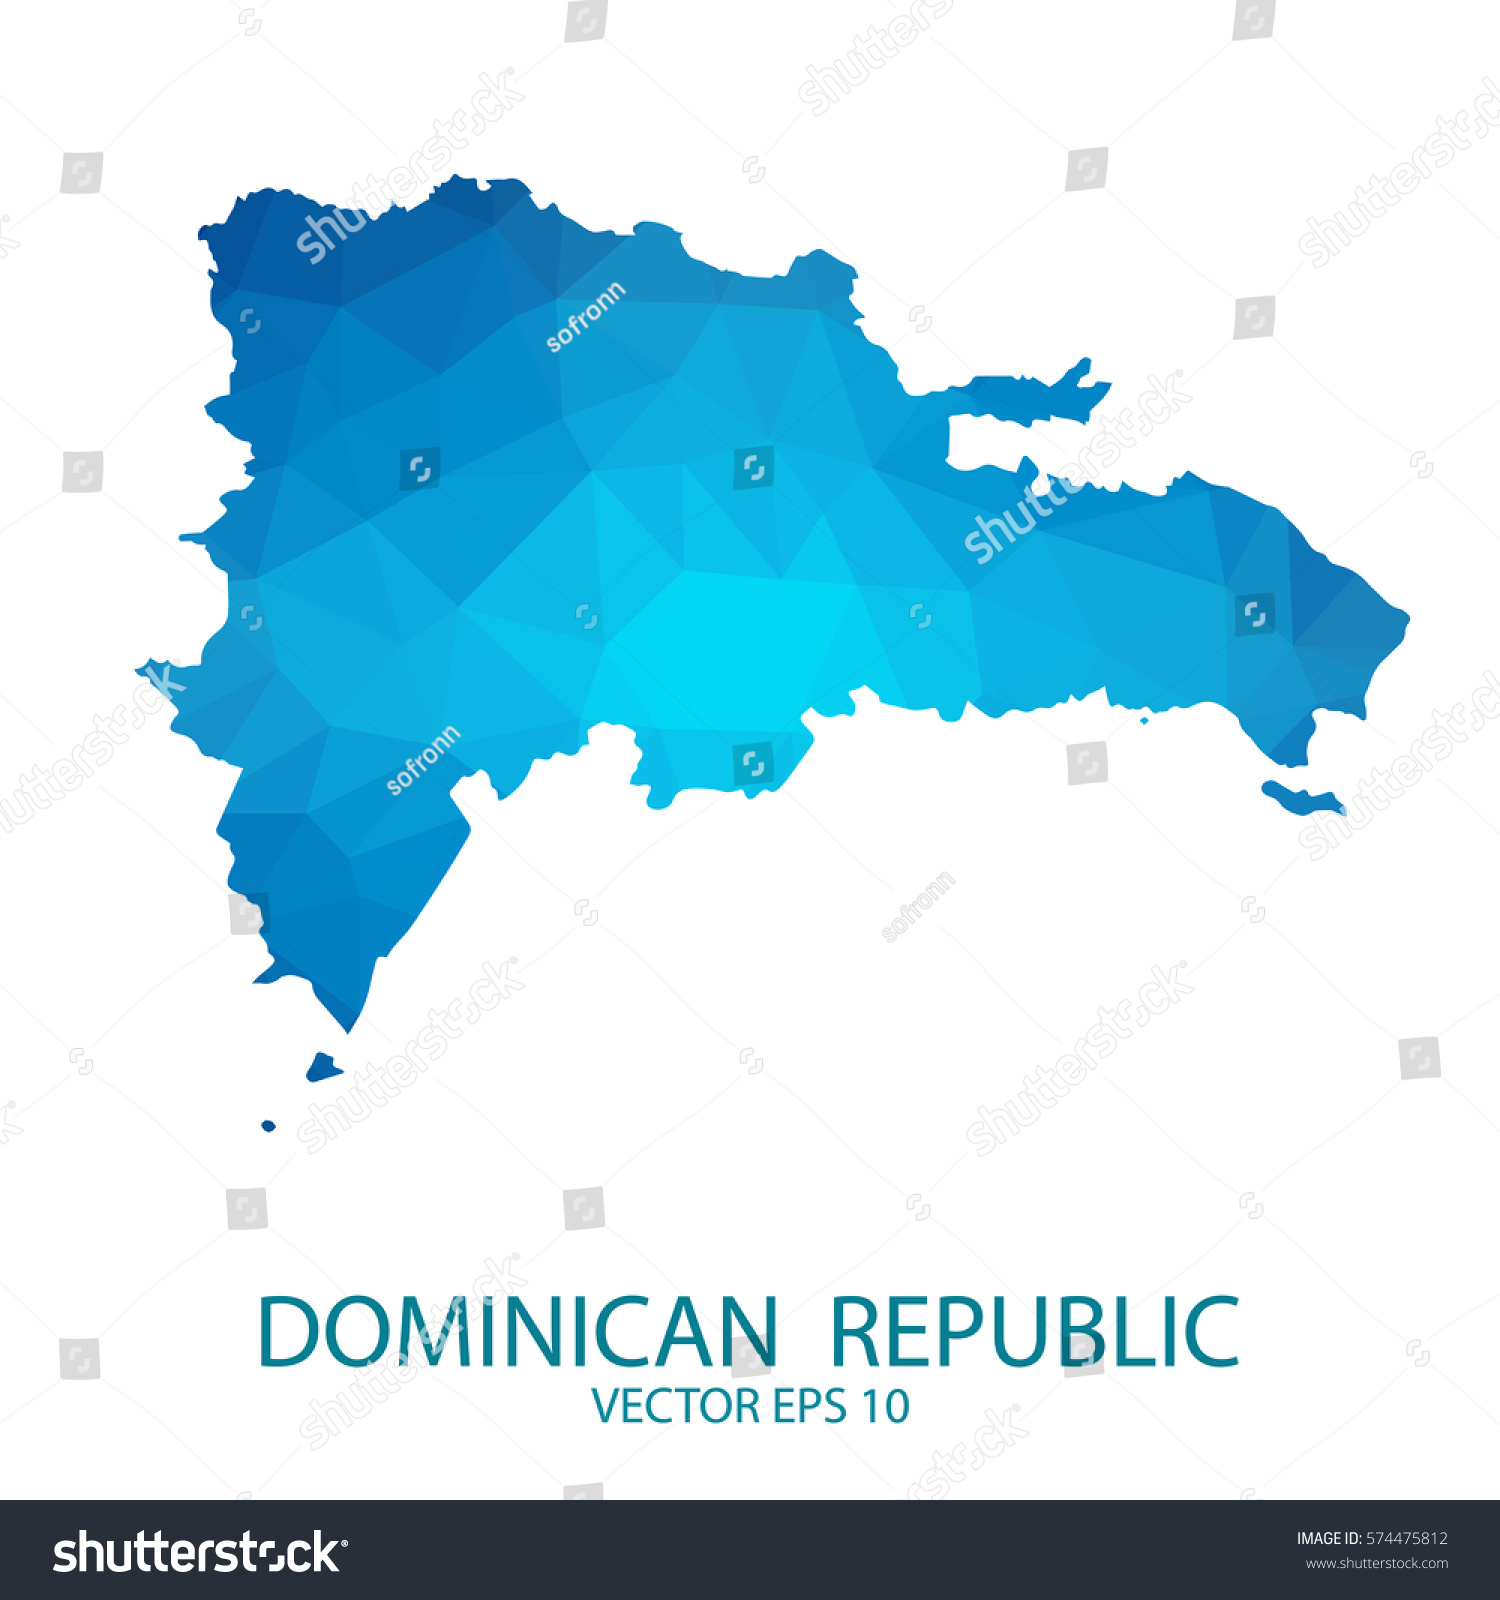 Dominican Republic Map Blue Geometric Rumpled Stock Vector 574475812 ...